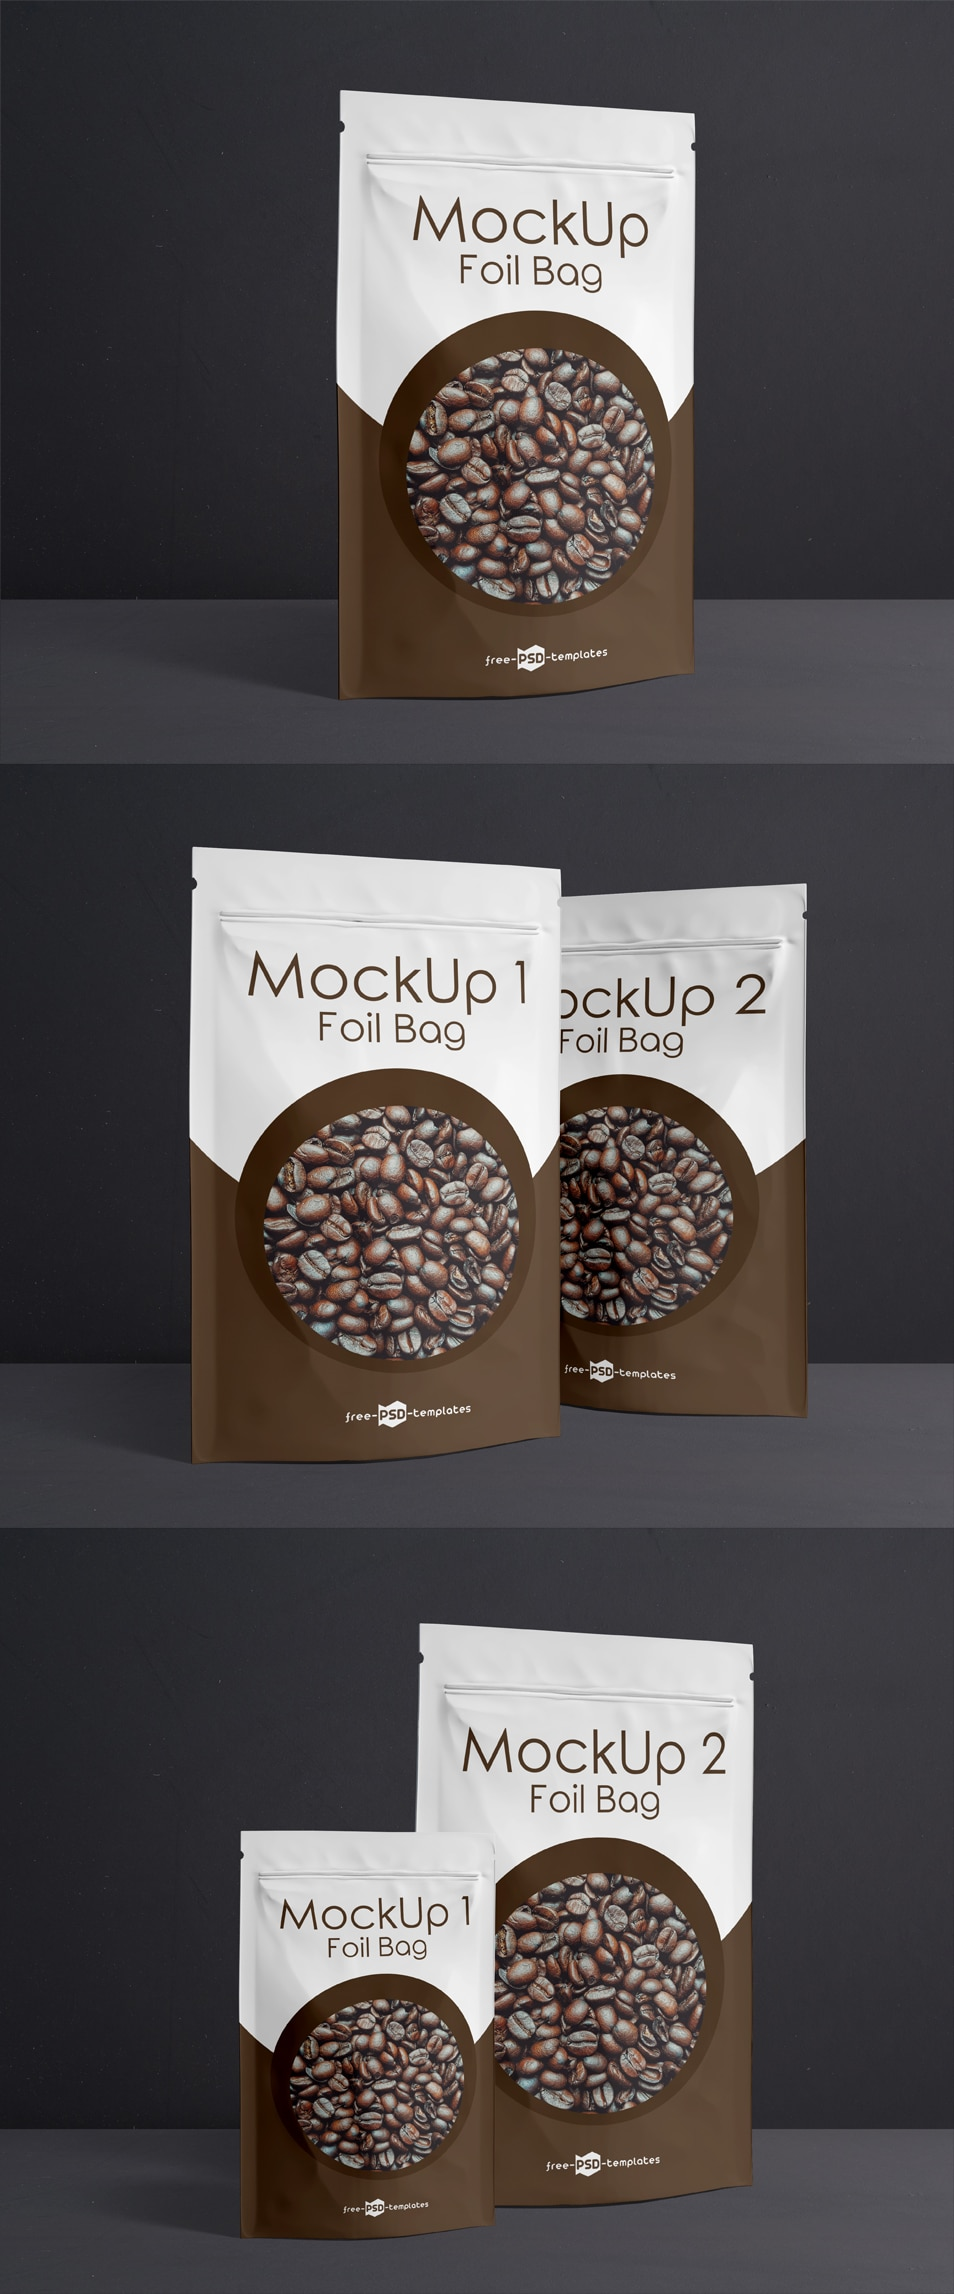 3 Free Foil Bag Mock-ups in PSD